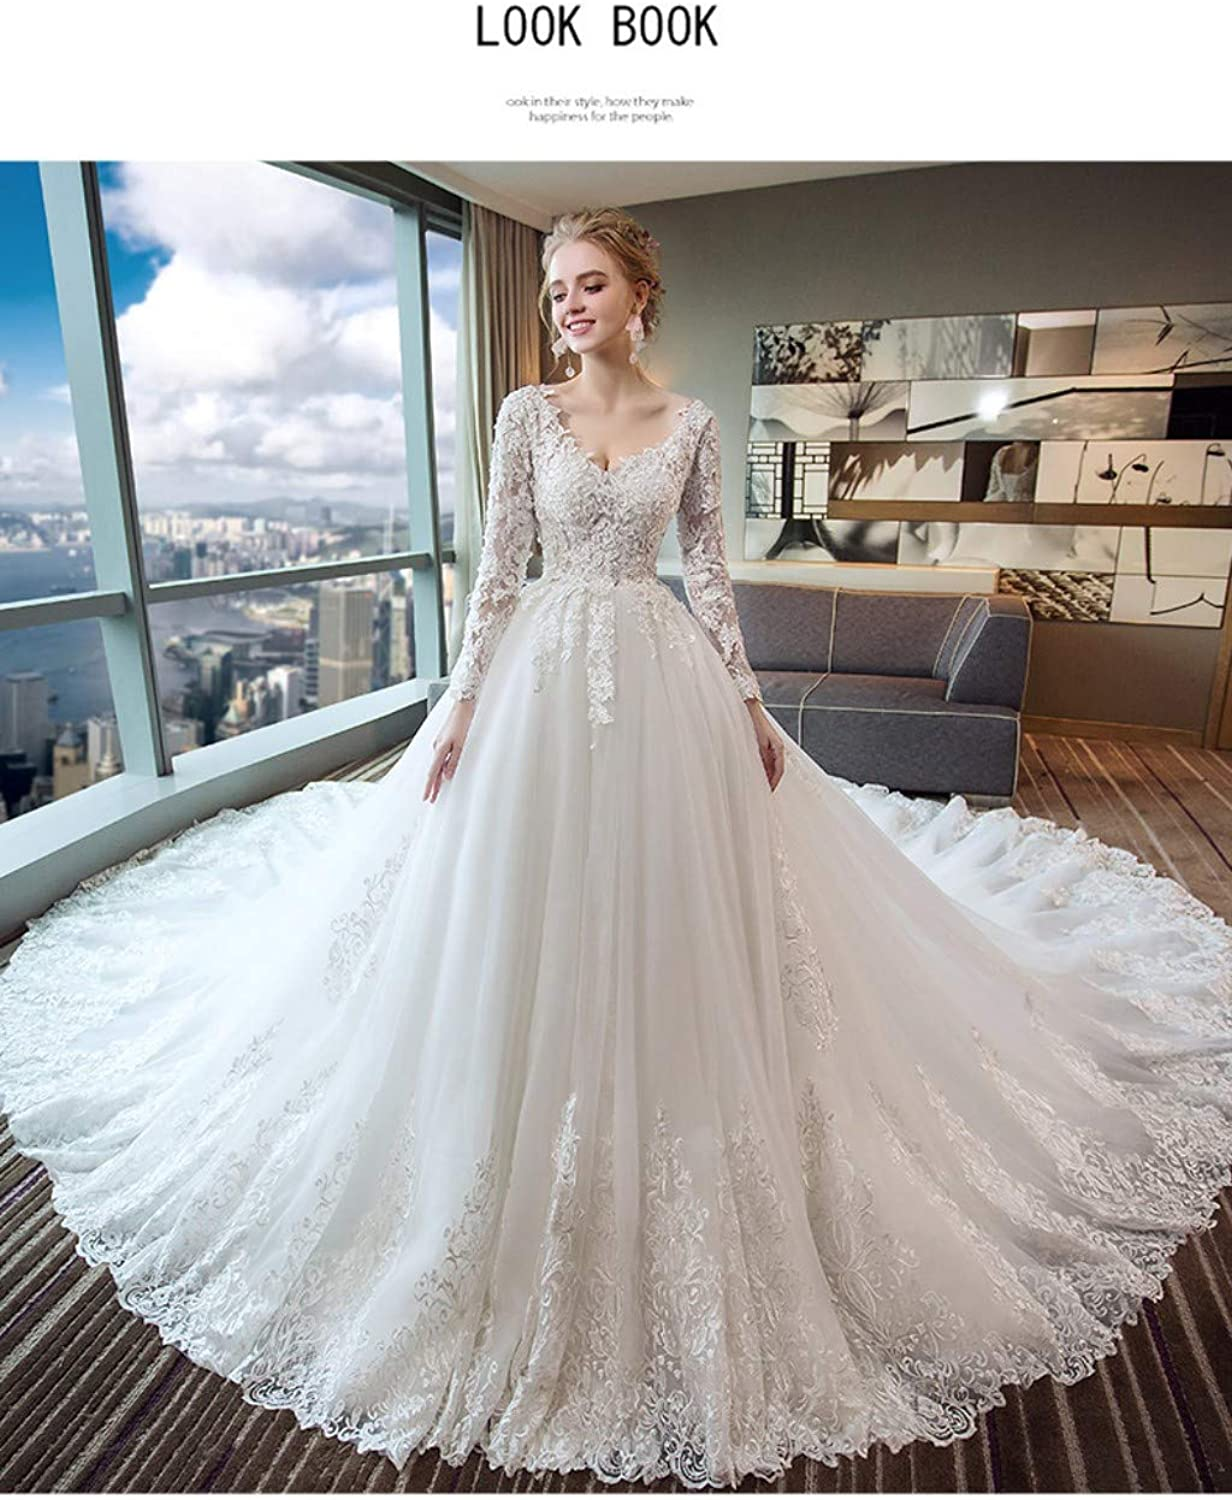 Darcy74Dulles Women's VNeck Lace Wedding Dresses Bridal Gowns Long Sleeves Ball Gowns with Appliques